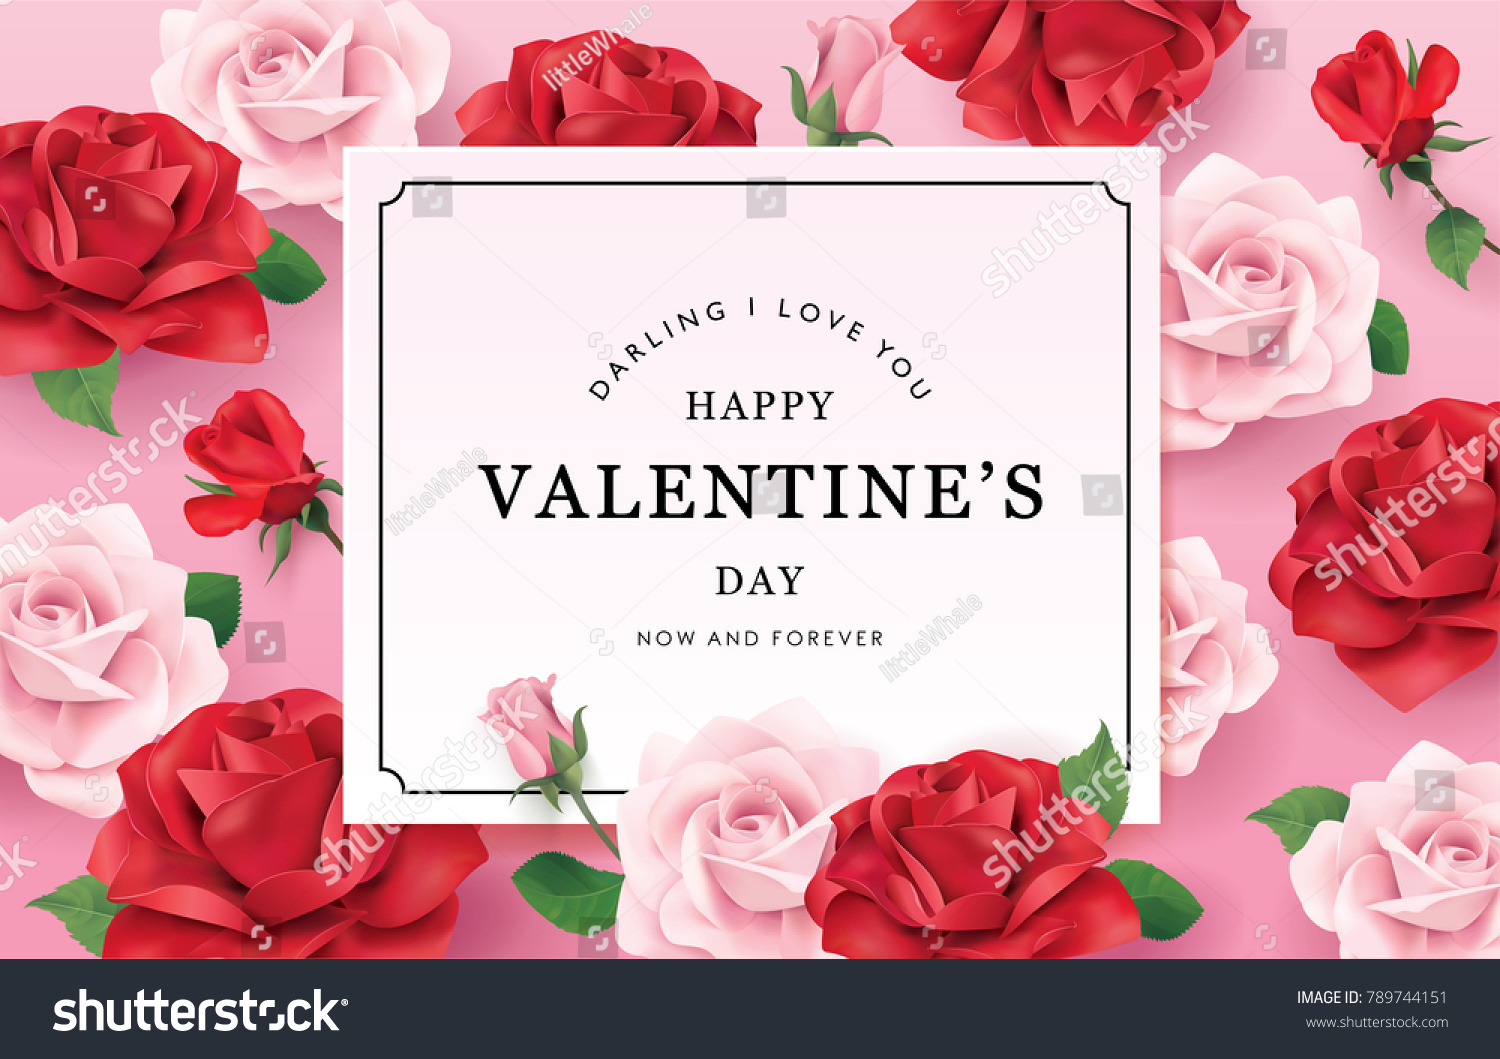 Happy Valentines Day Romance Greeting Card Stock Vector Royalty